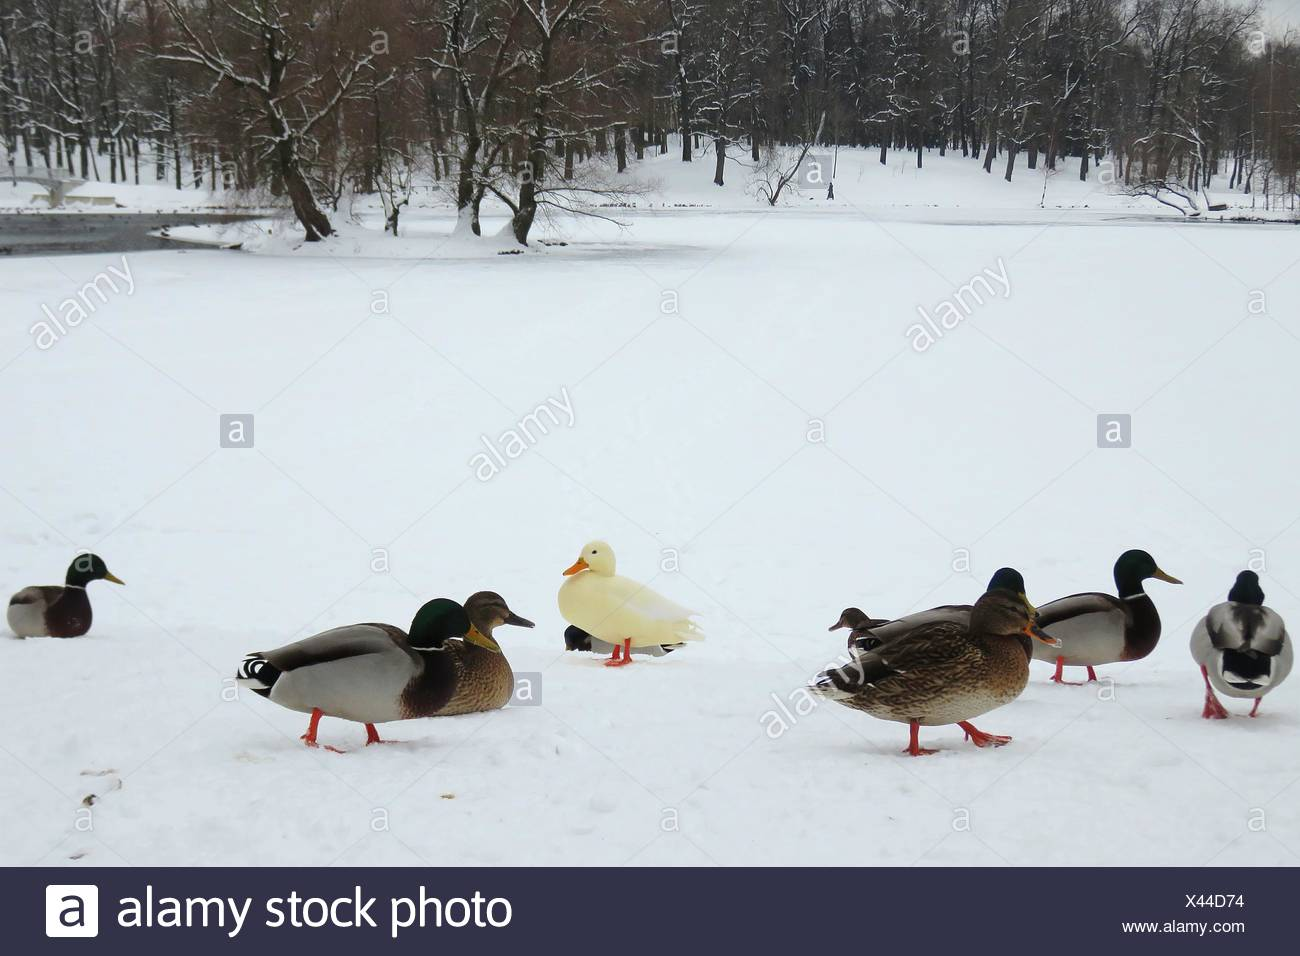 Flock Of Mallard Ducks On Snowcovered Landscape - Stock Image